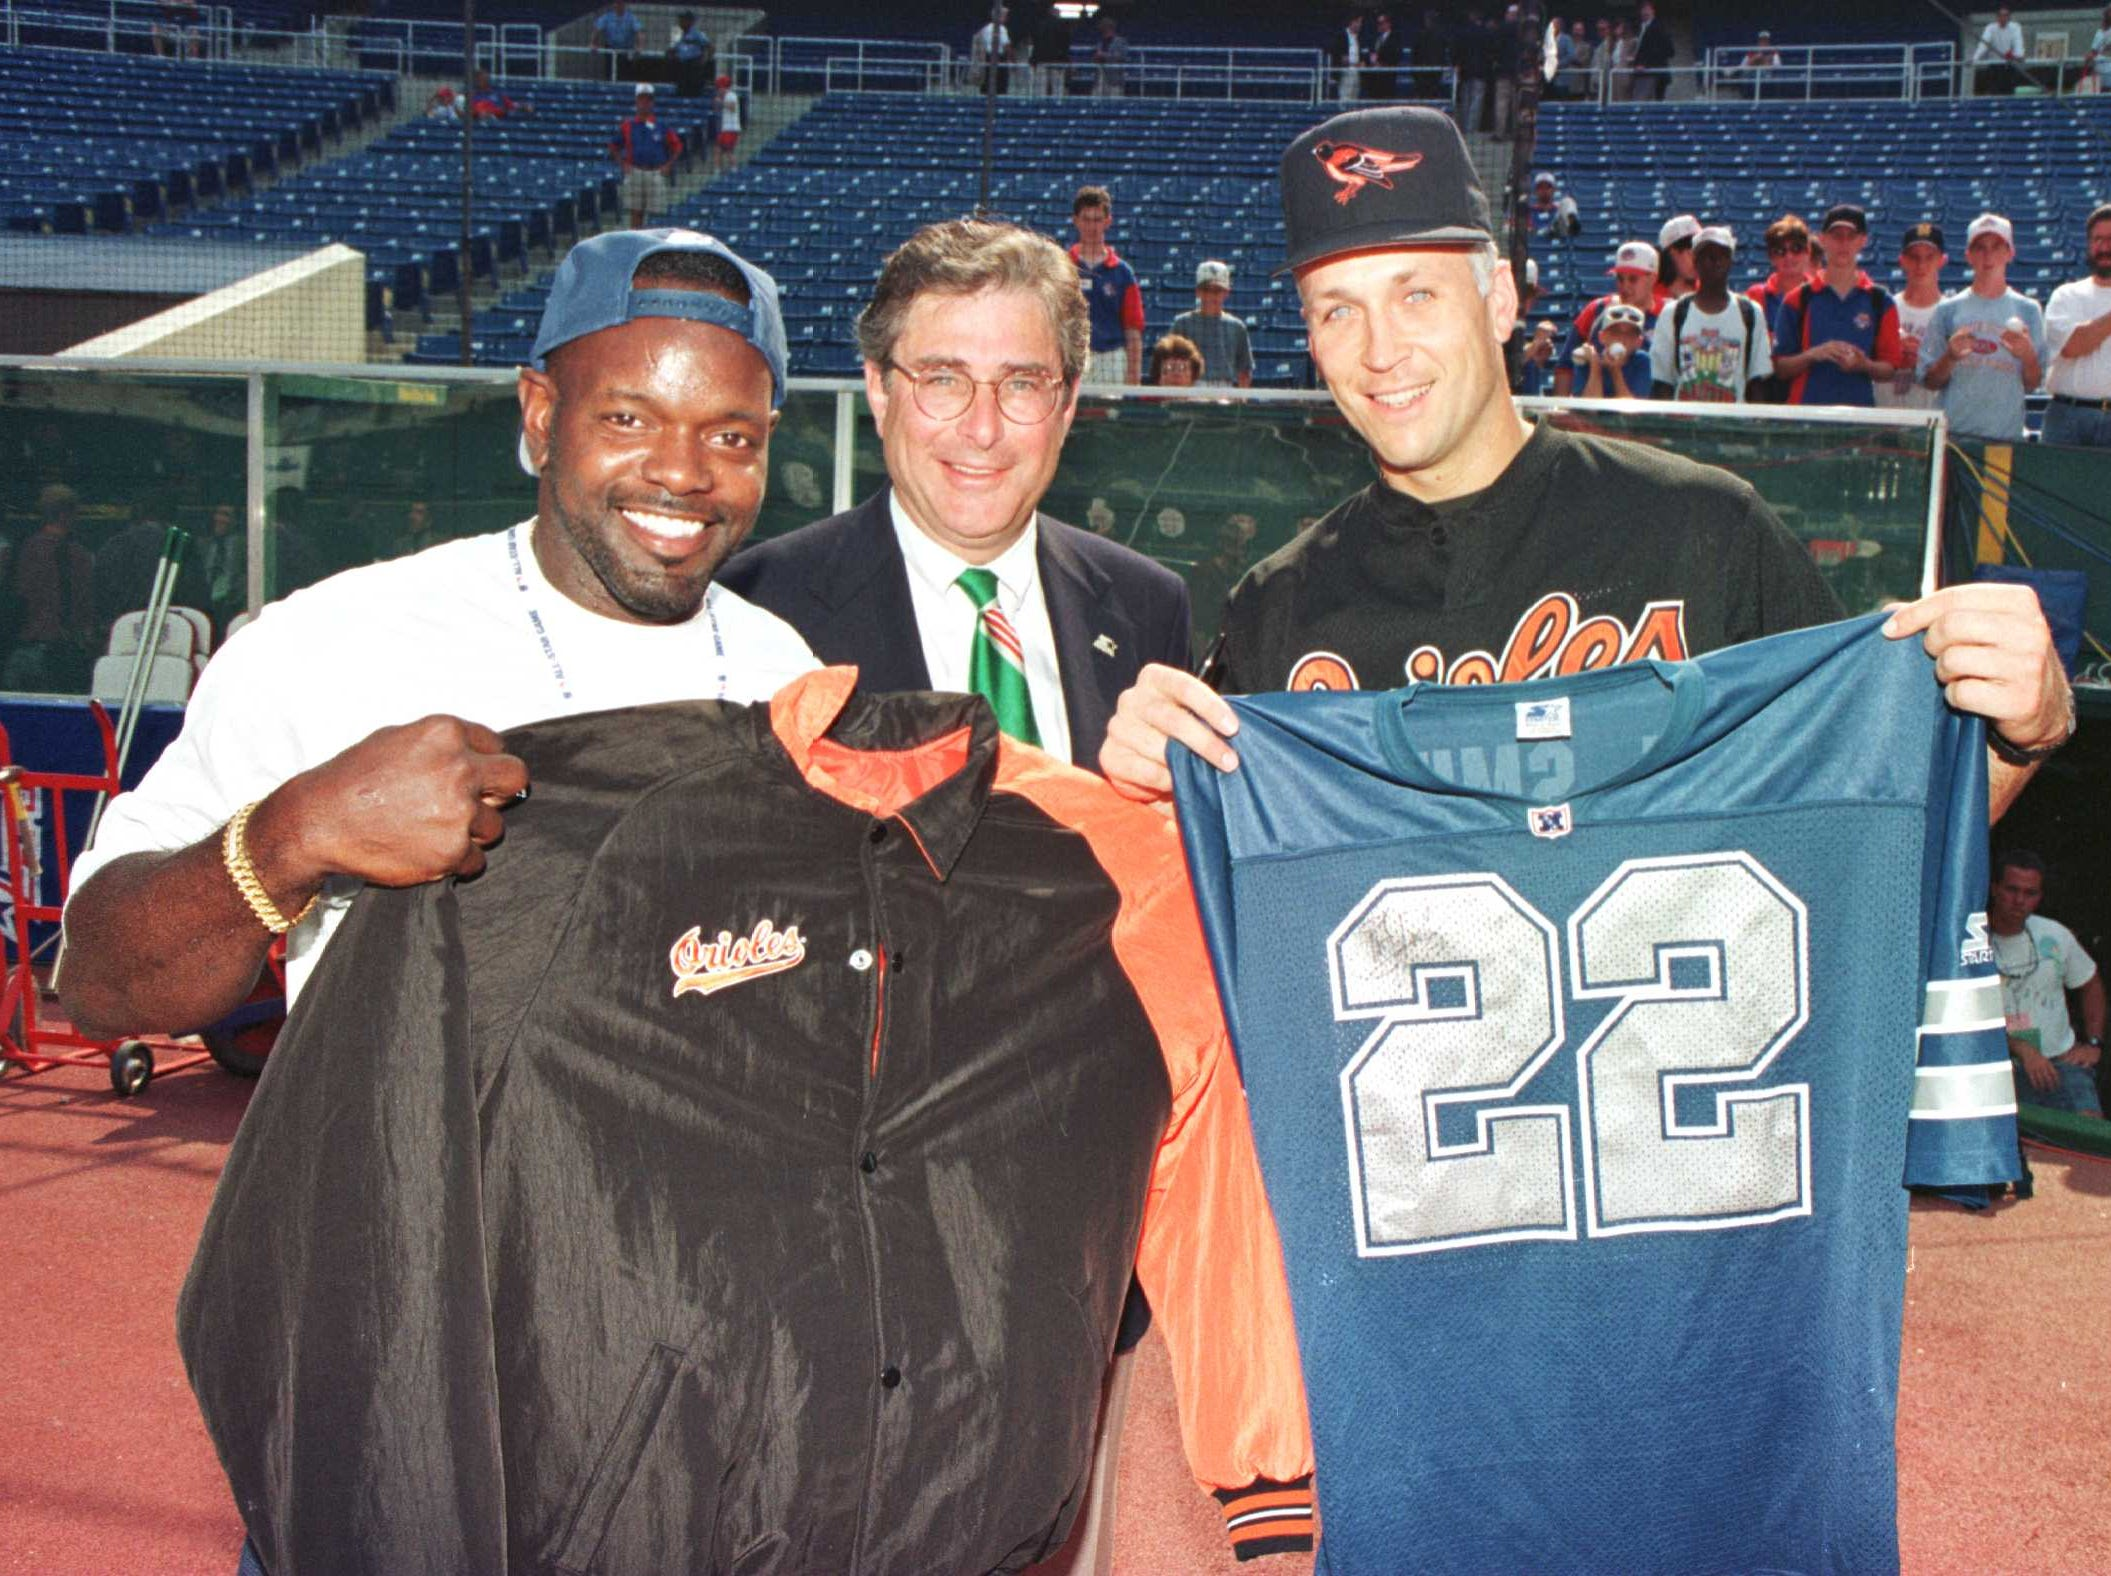 David Beckerman (middle), the CEO of Starter, watches as Emmitt Smith of the Dallas Cowboys (left) and Cal Ripken Jr. (right) of the Baltimore Orioles hold eachothers jerseys.  This was part of a jersey exchange between the two athletes before the Major League Baseball All-Star Game at Veterans Stadium in Philadelphia.  Mandatory Credit: Al Bello/ALLSPORT